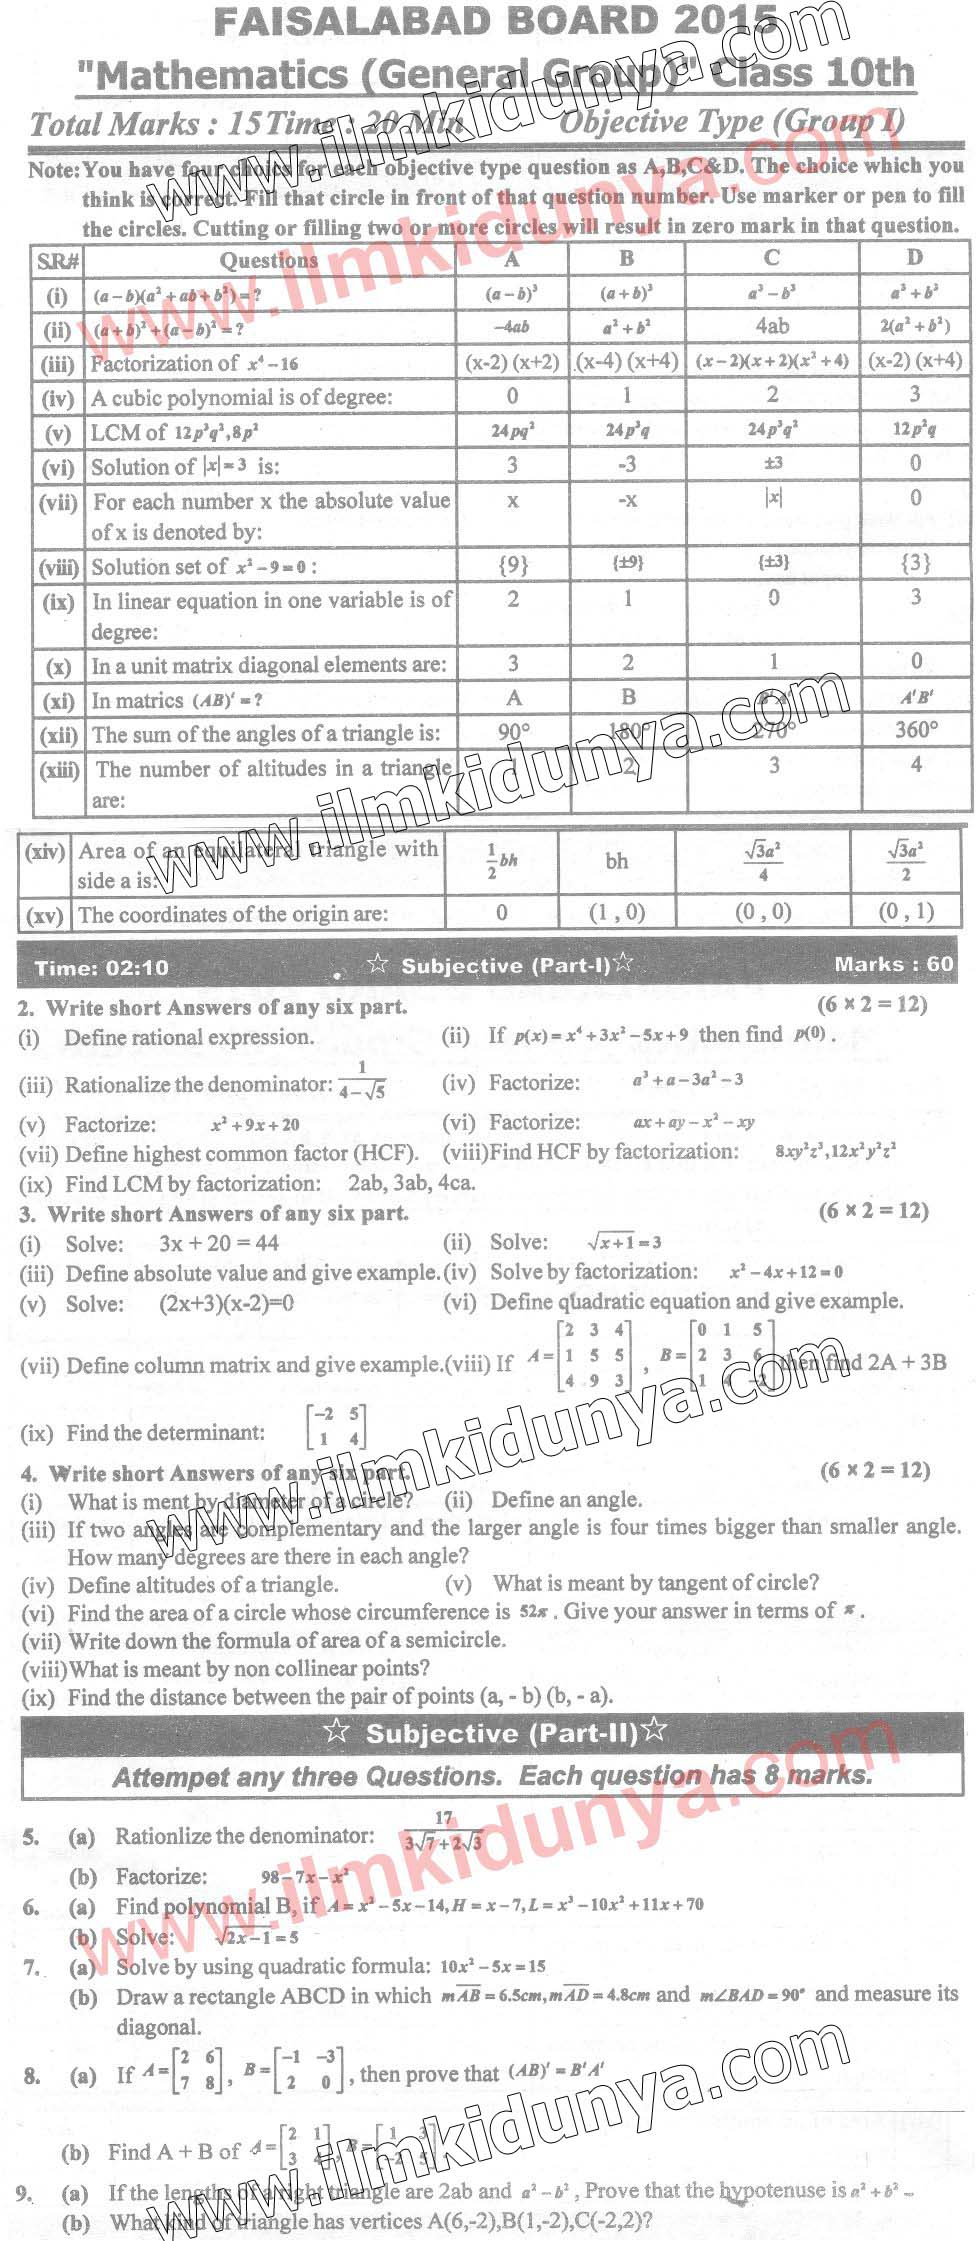 Past Papers 2015 Faisalabad Board 10th Class General Math